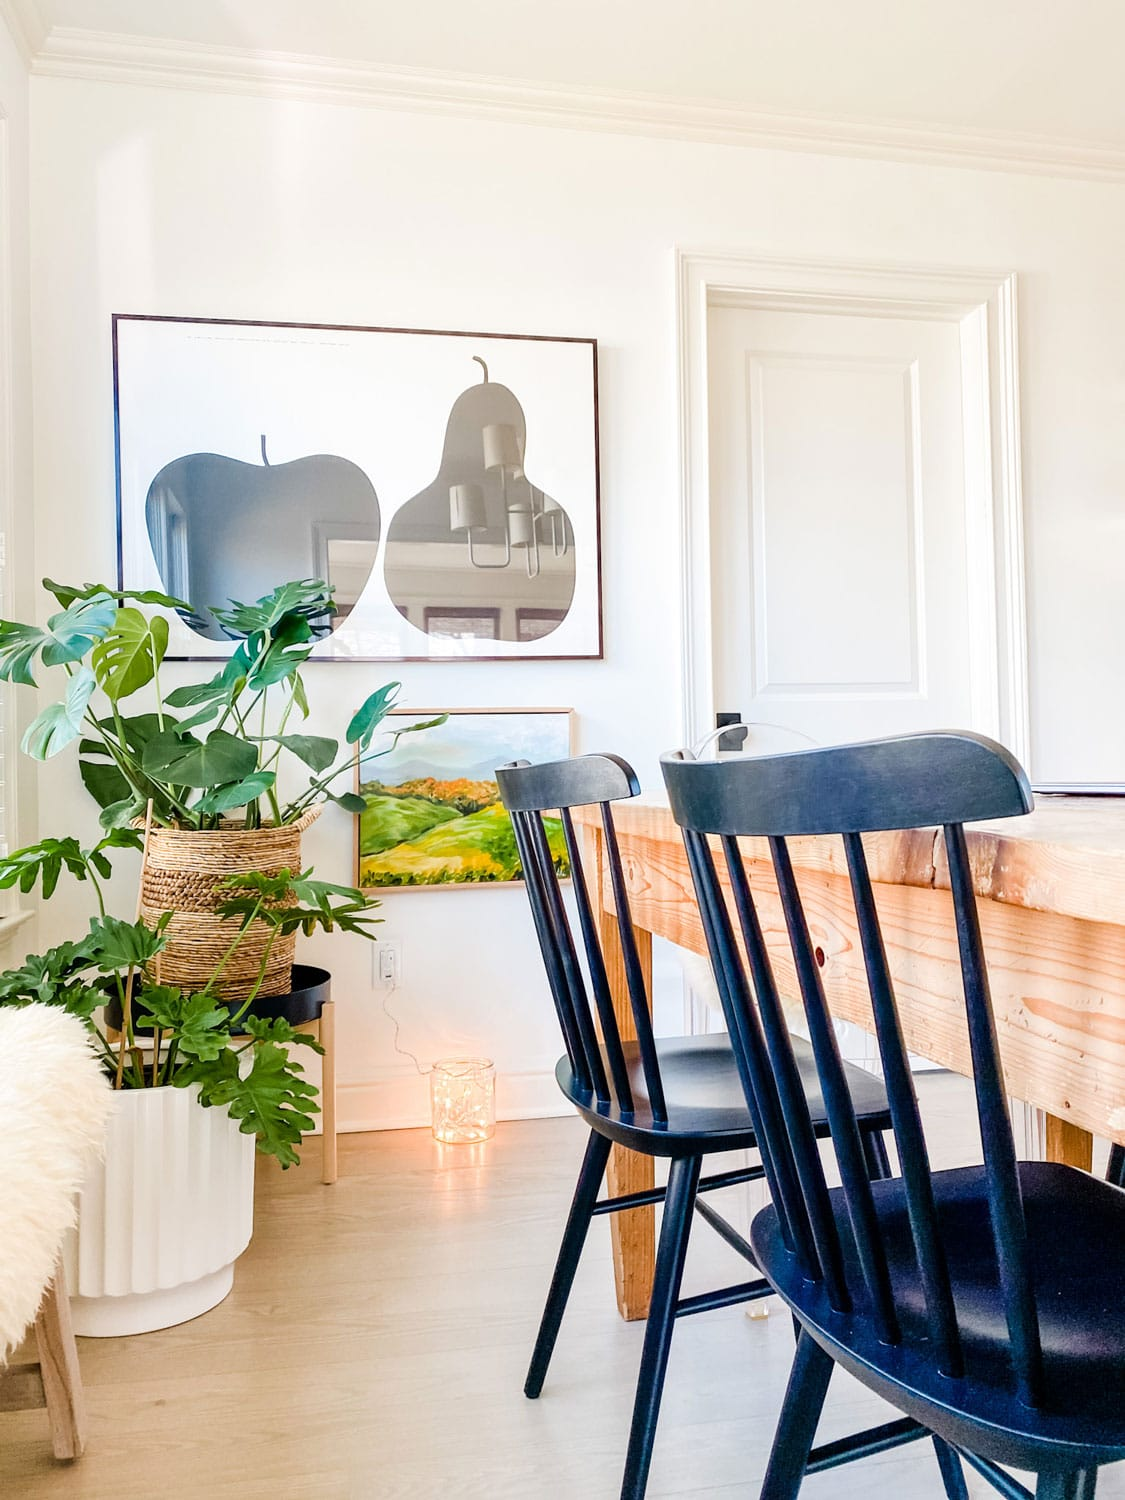 graphic poster and painting with plants in a dining room